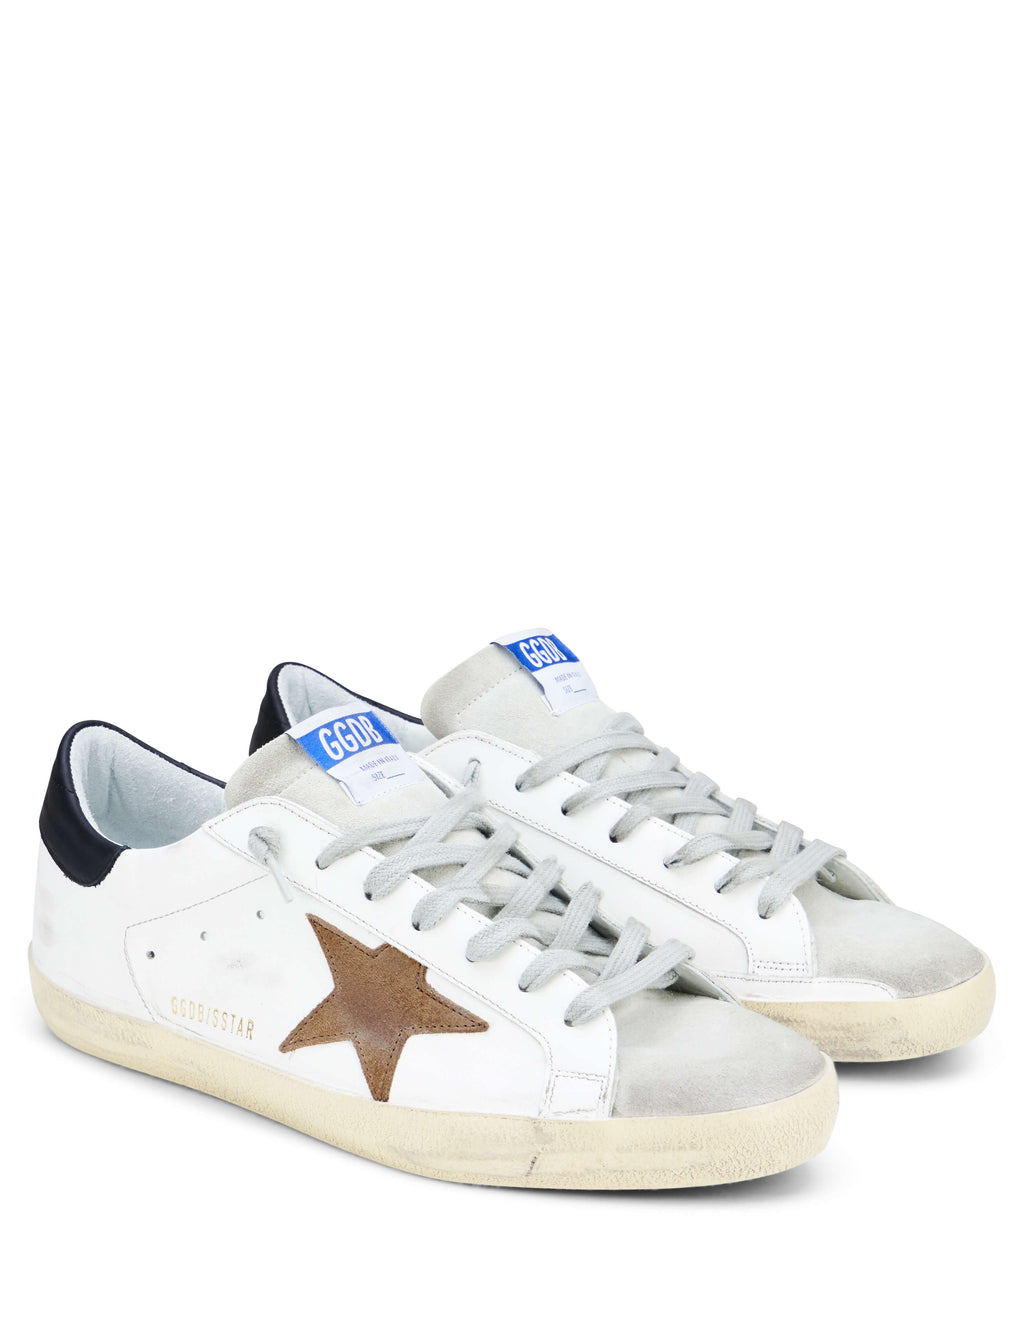 Golden Goose Deluxe Brand Men's Giulio Fashion White Superstar Sneakers G34MS590N12